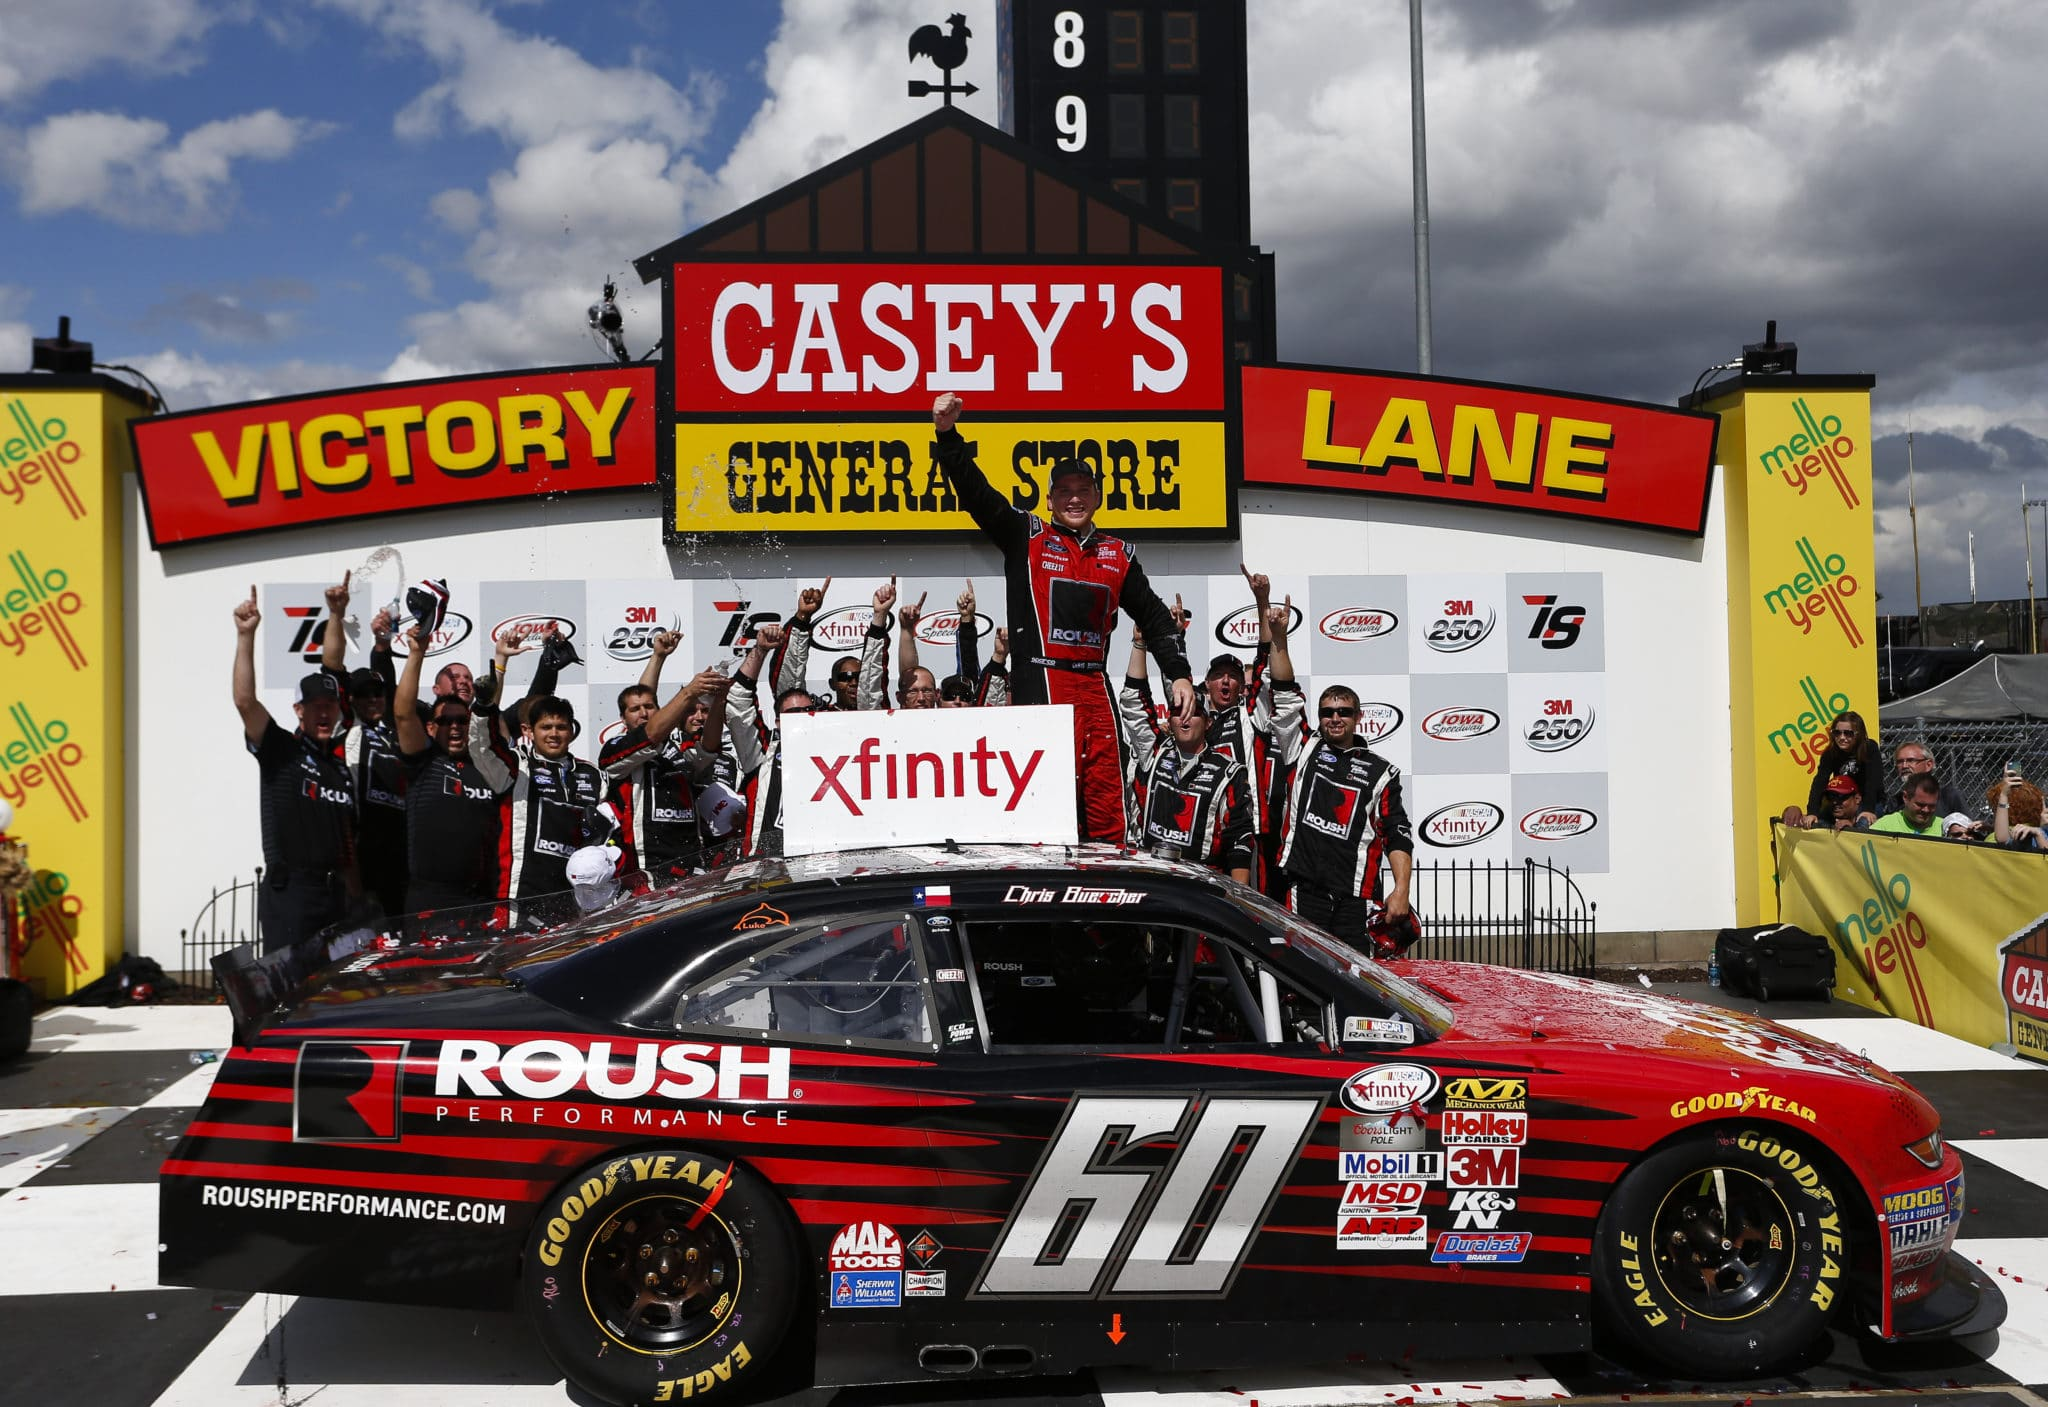 2015 Iowa I NXS Chris Buescher victory lane credit NASCAR vis Getty Images